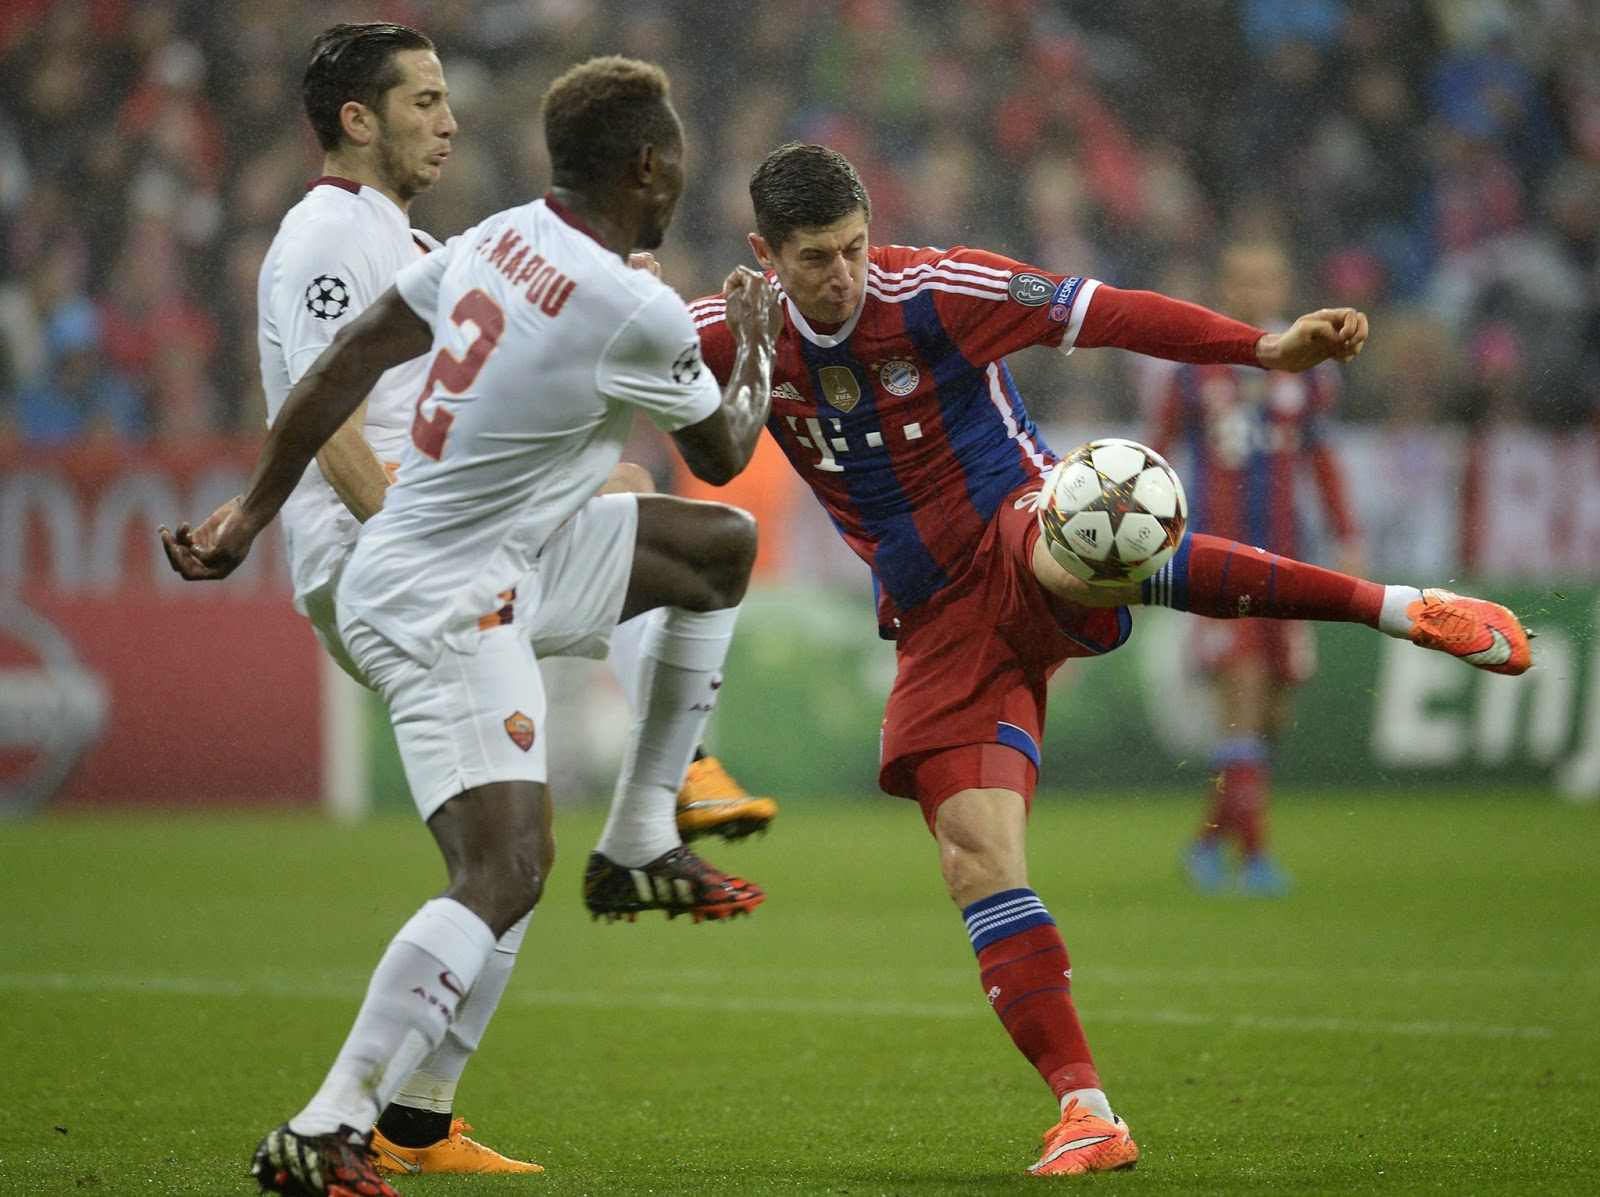 VIDEO Bayern Monaco Roma 2-0 immagini filmato gol highlights